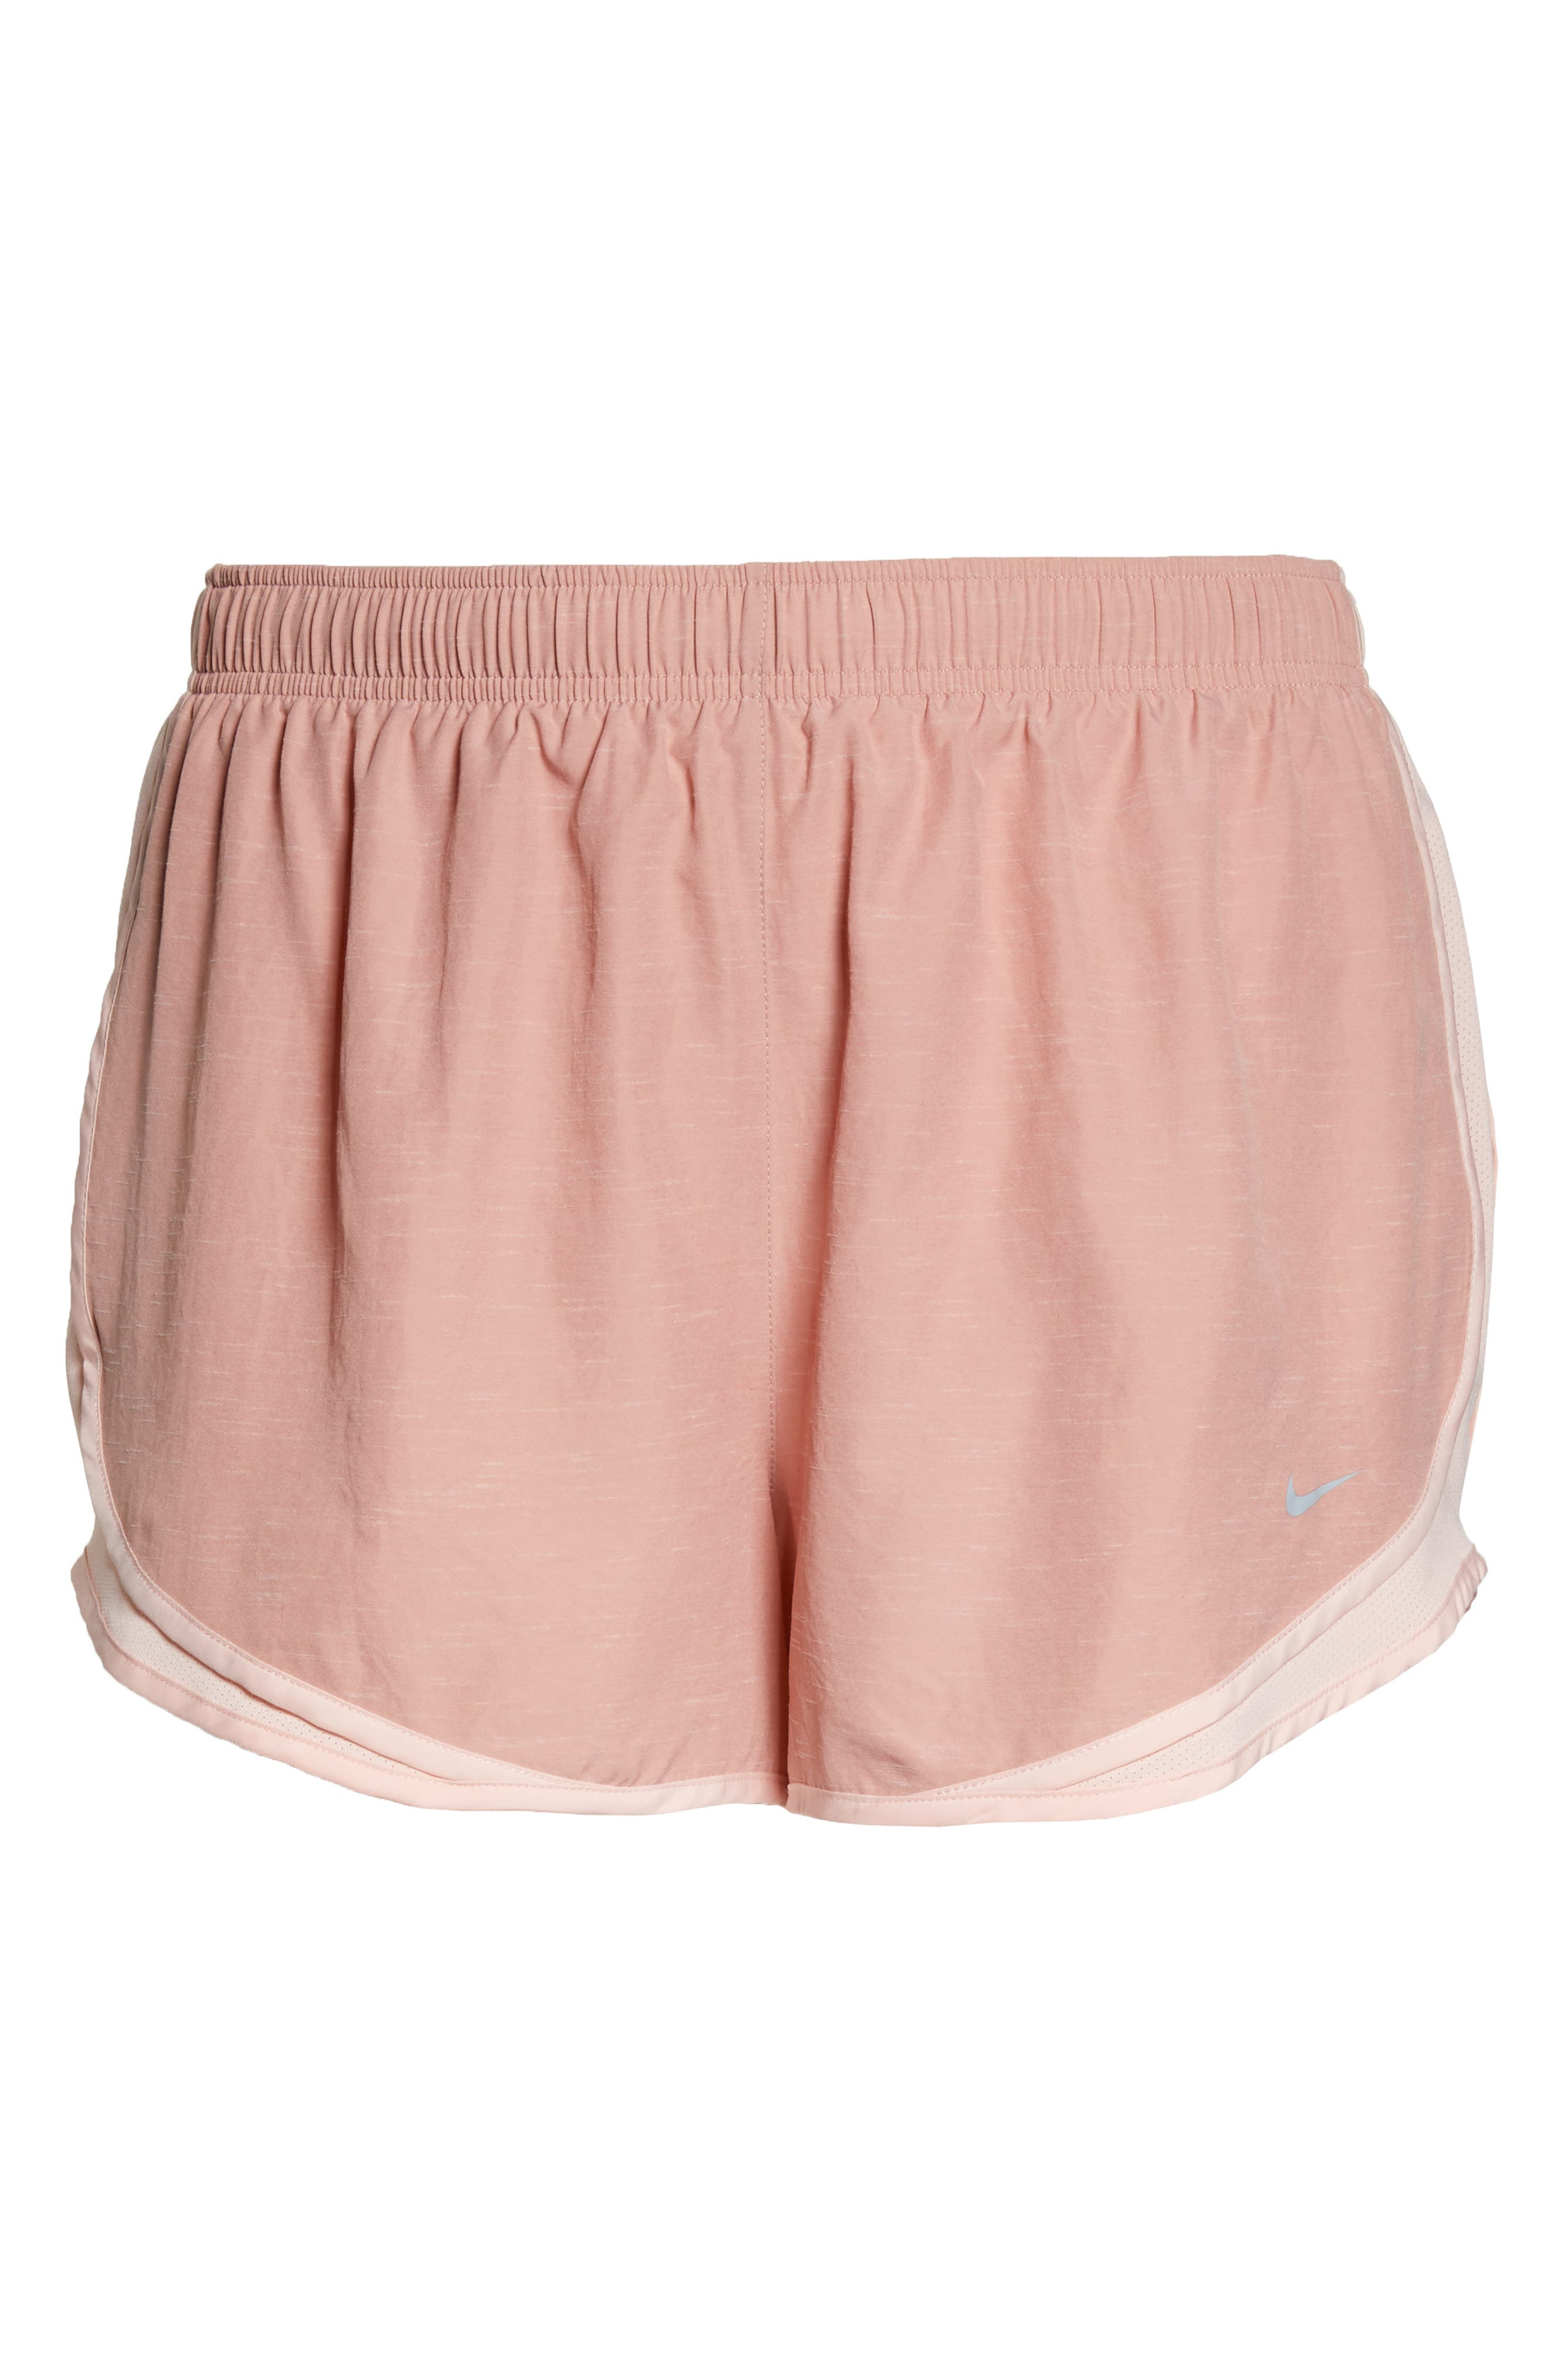 Dry Tempo High Rise Running Shorts,                             Alternate thumbnail 7, color,                             RUST PINK/ STORM PINK